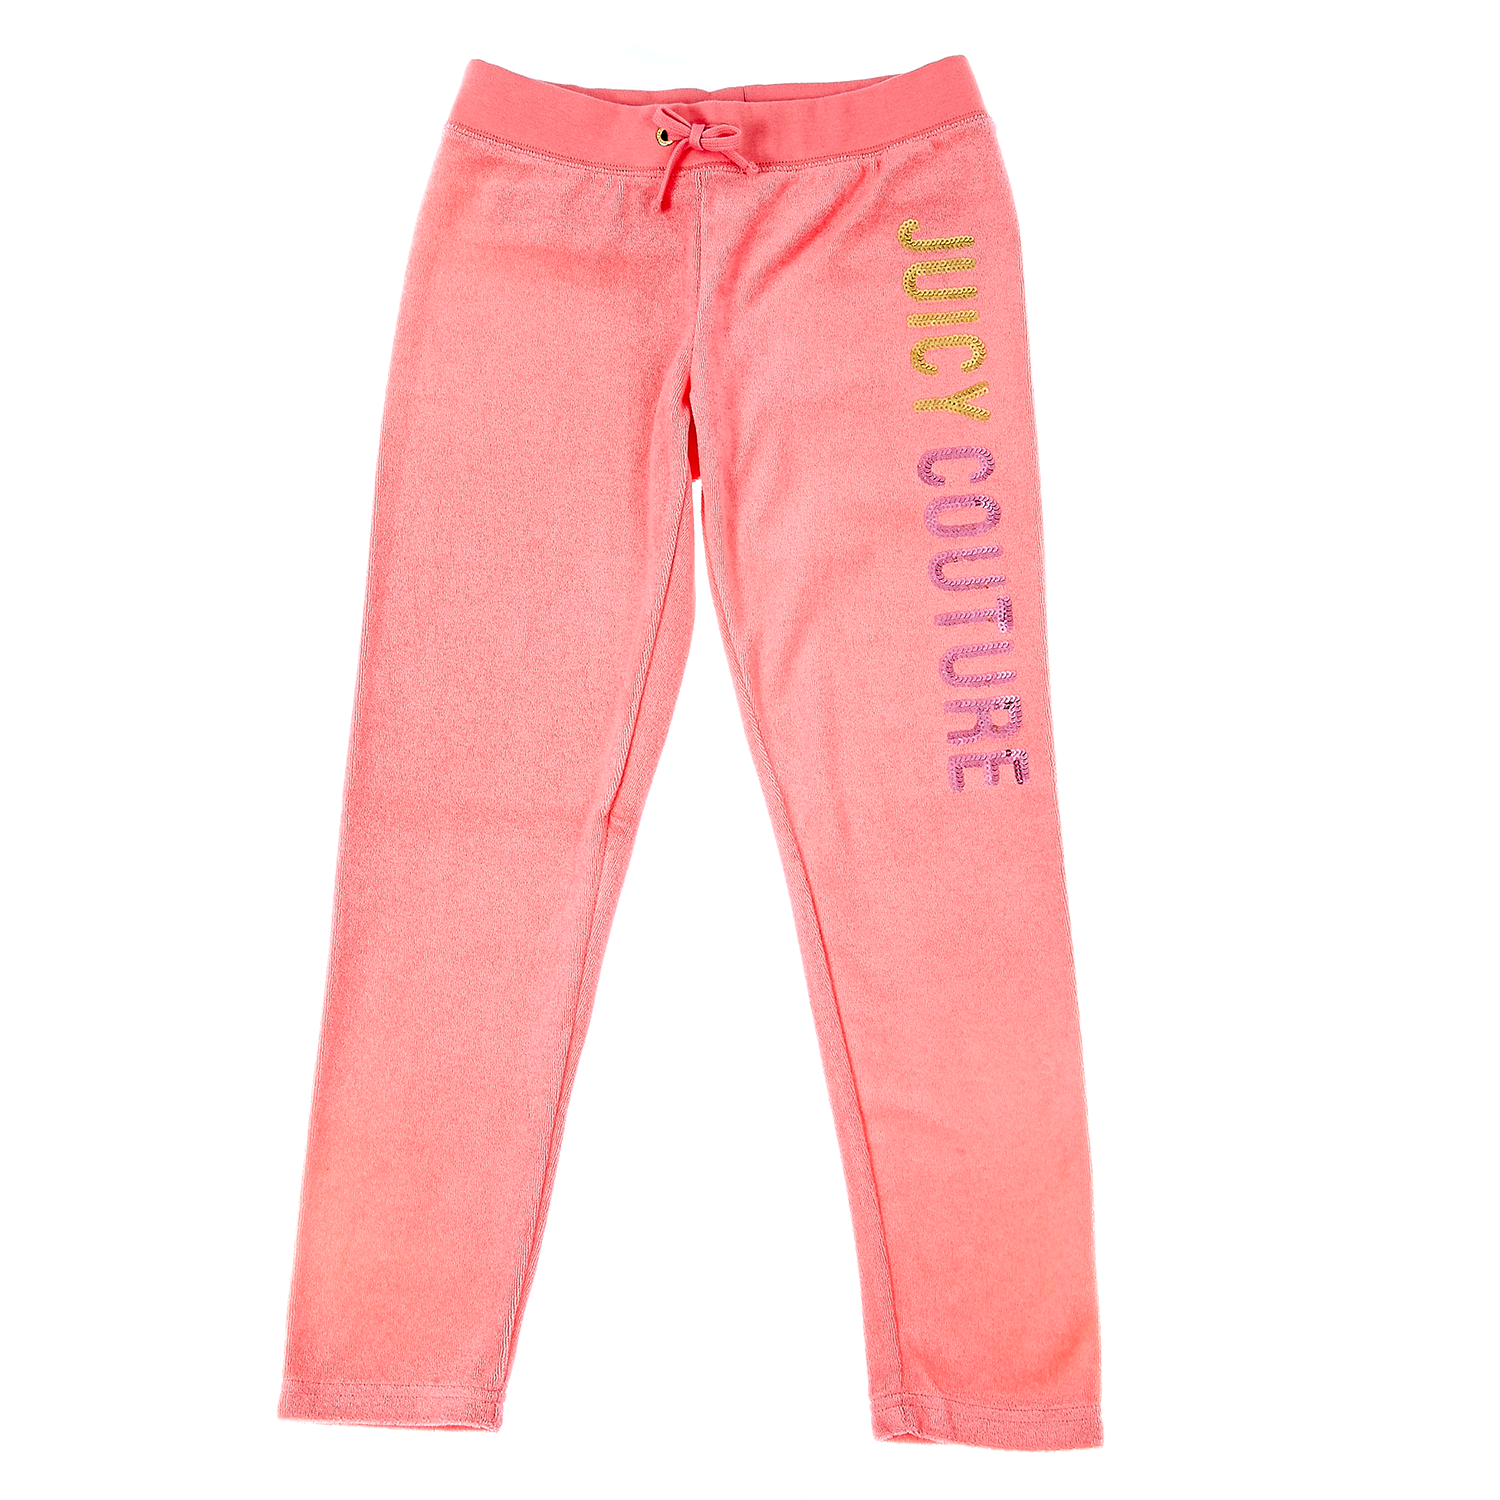 44588e7ac9f -60% JUICY COUTURE KIDS – Παιδικό παντελόνι Juicy Couture σομών